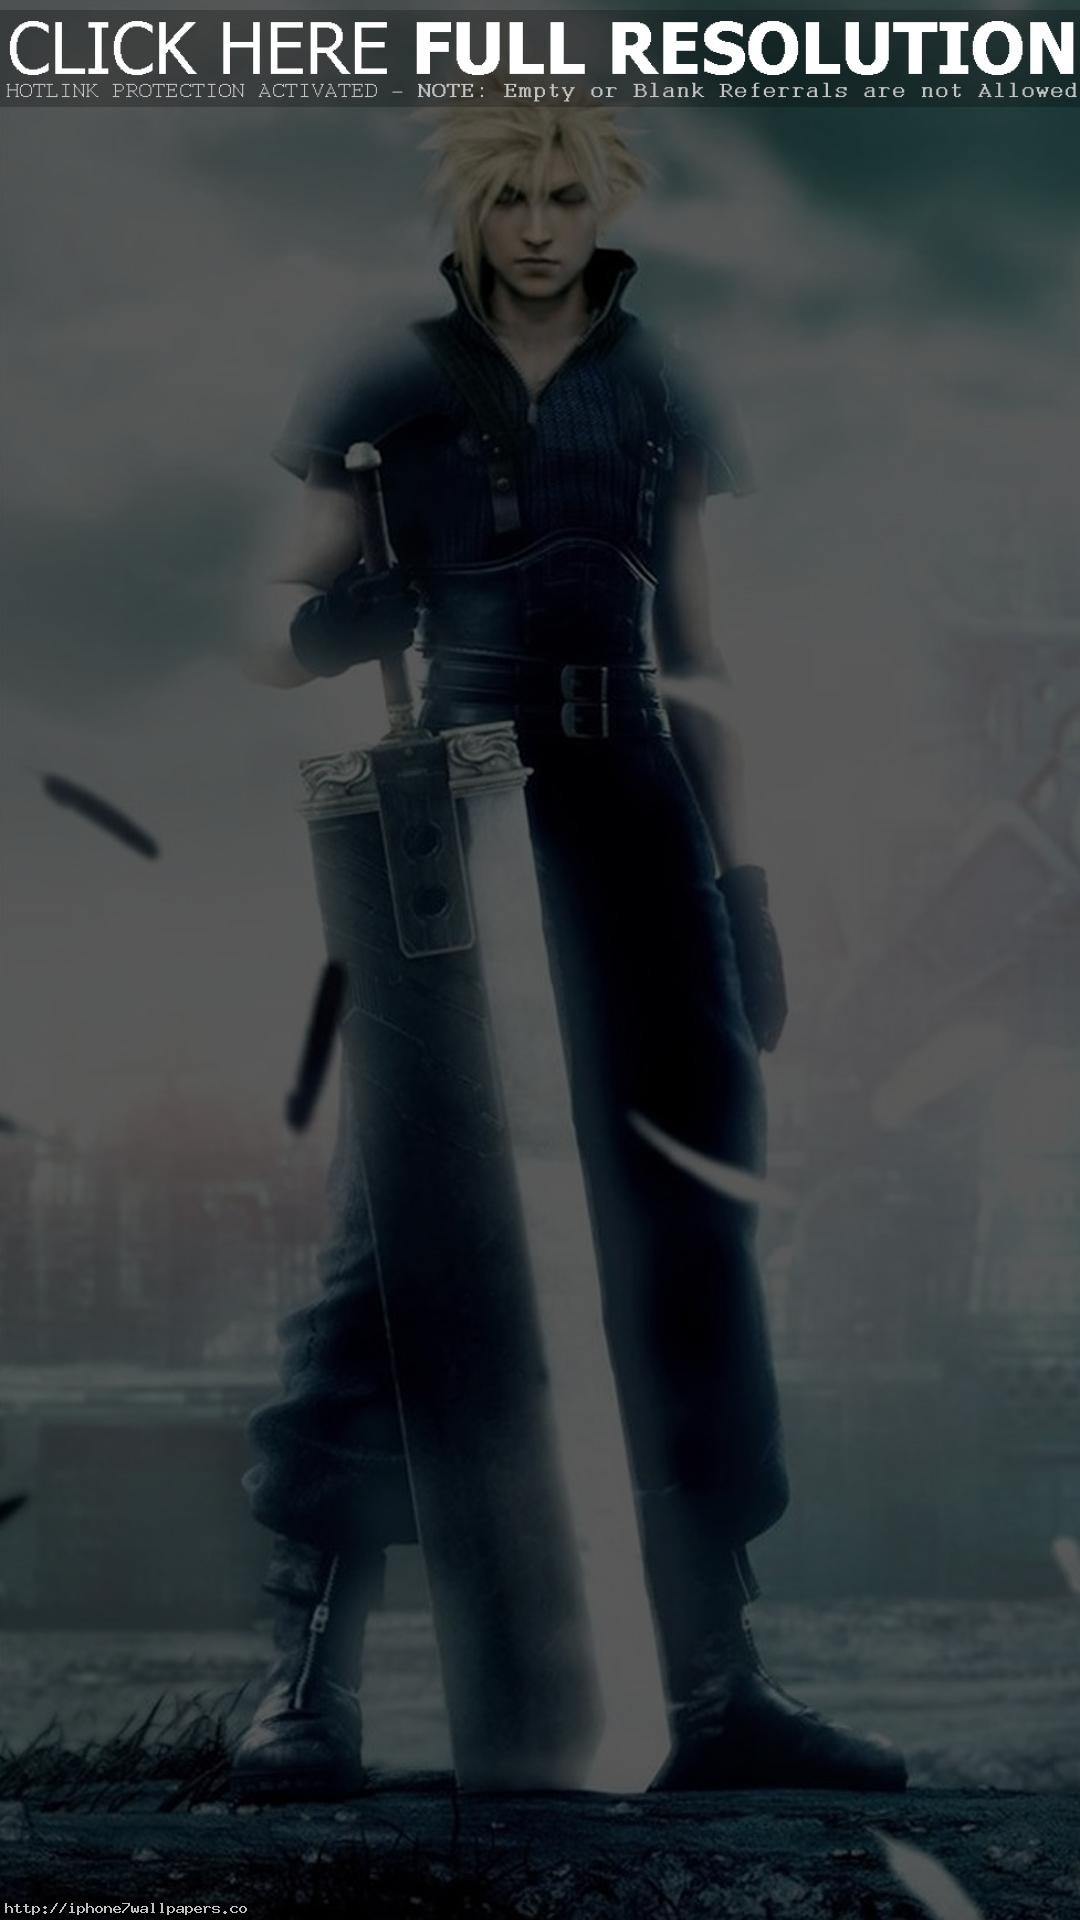 Final Fantasy 7 – Cloud Strife Android wallpaper – Android HD wallpapers